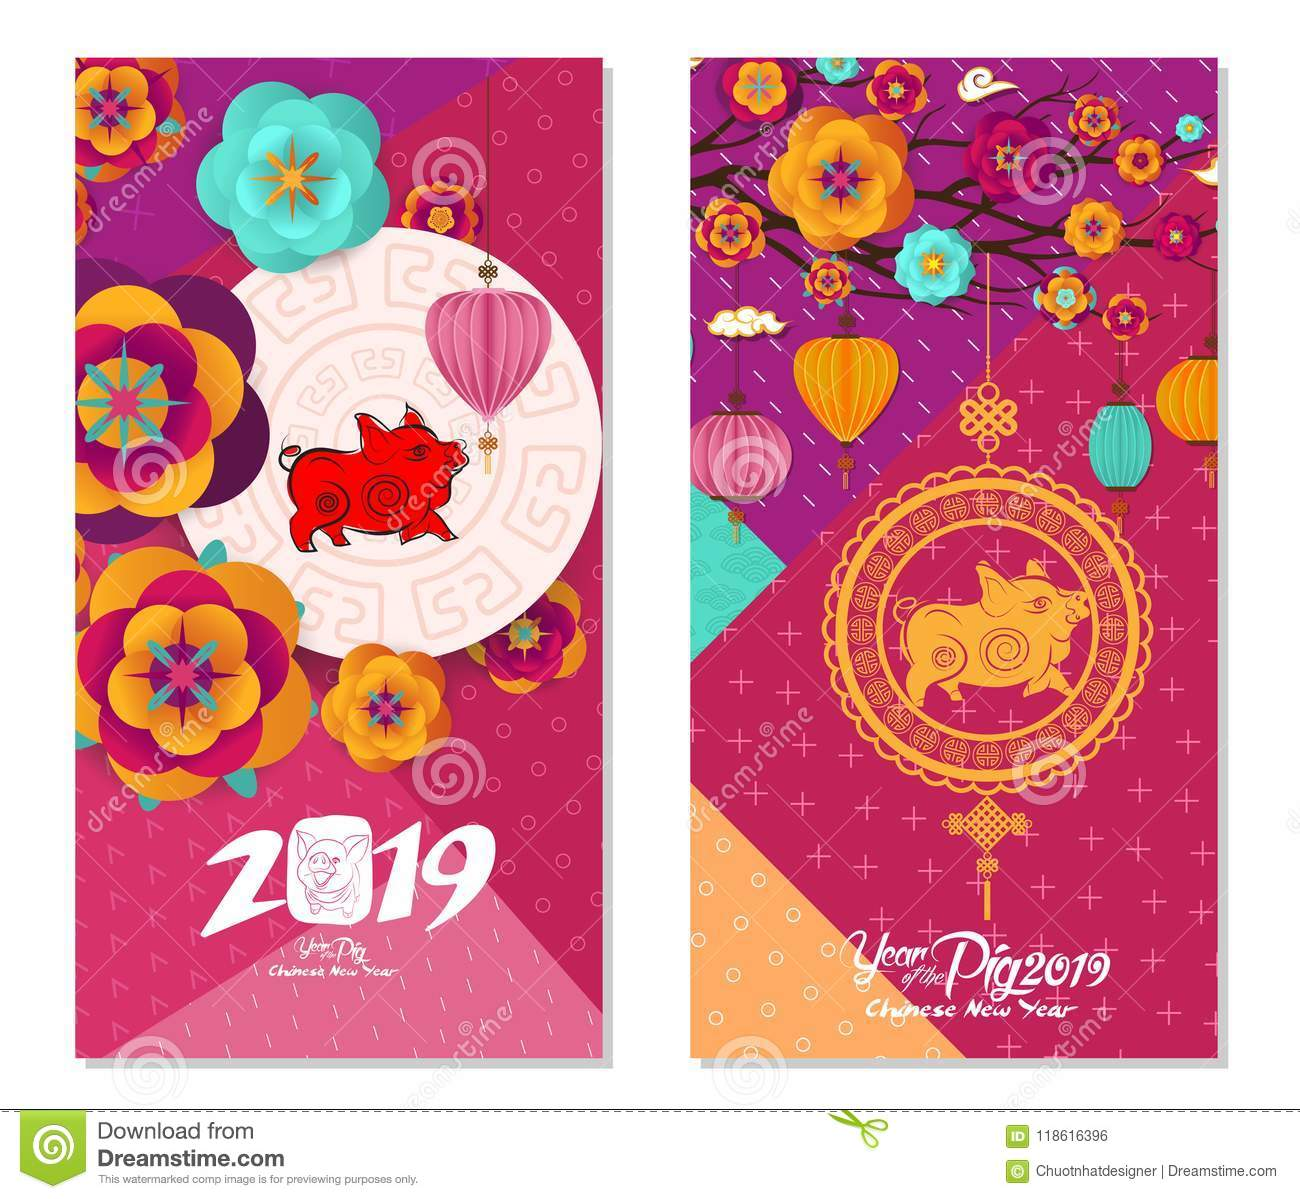 2019 chinese new year greeting card two sides poster flyer or invitation design with